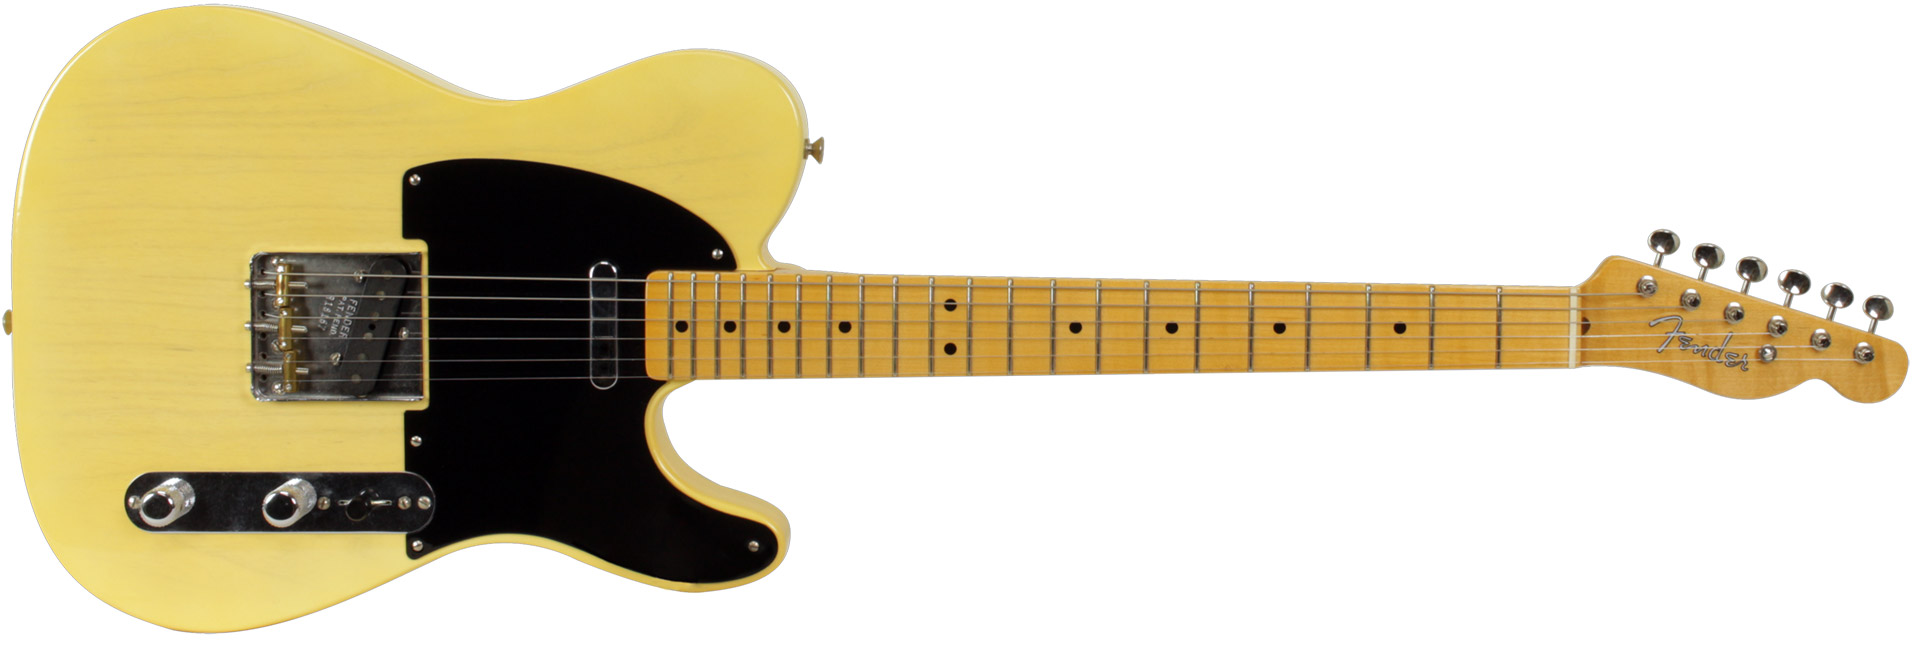 GUITARRA FENDER 51 NOCASTER LUSH CLOSED CLASSIC 2018 COLLECTION 923-5000-524 F.NOCASTER BLOND